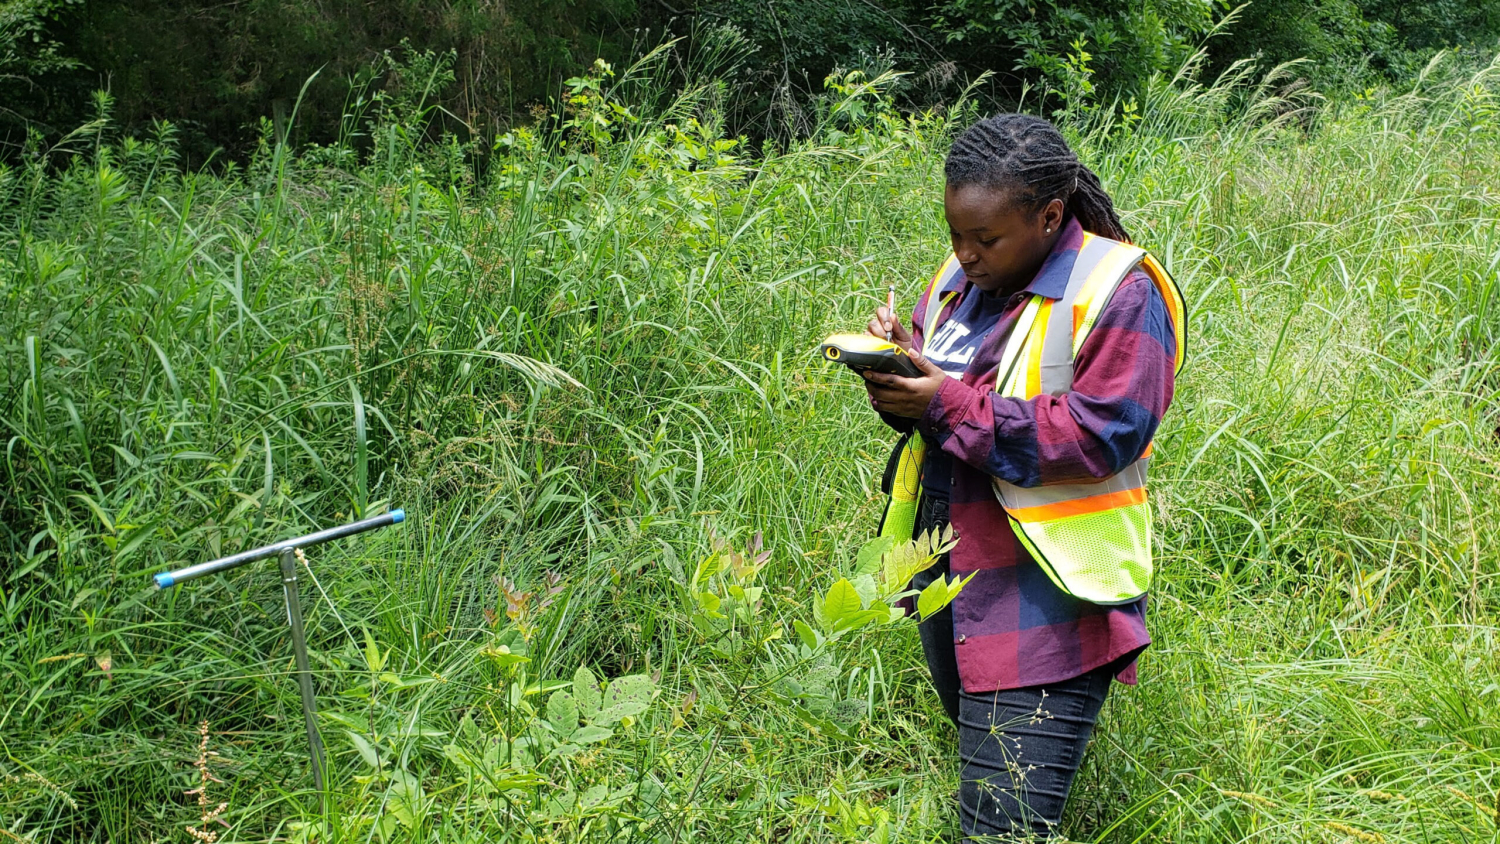 Neverson works in the field outside - Graduation to Vocation: Enhancing the Environment - College of Natural Resources at NCState University